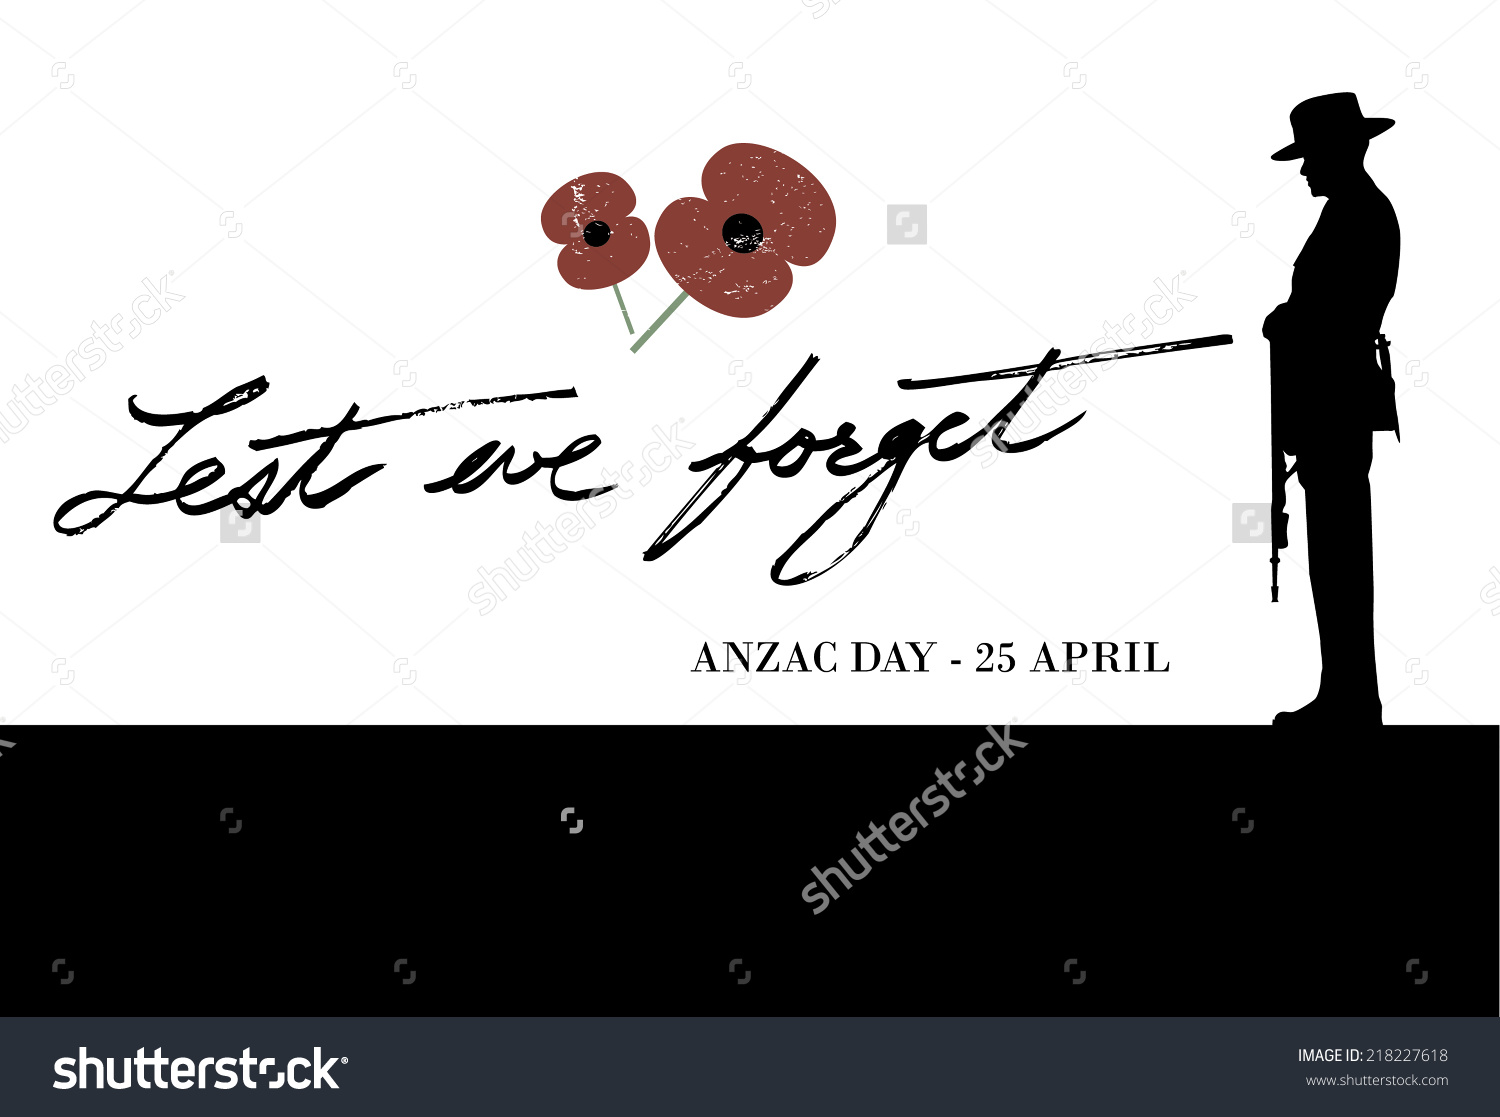 Soldiers clipart anzac day Anzac Clipart Best Day Anzac